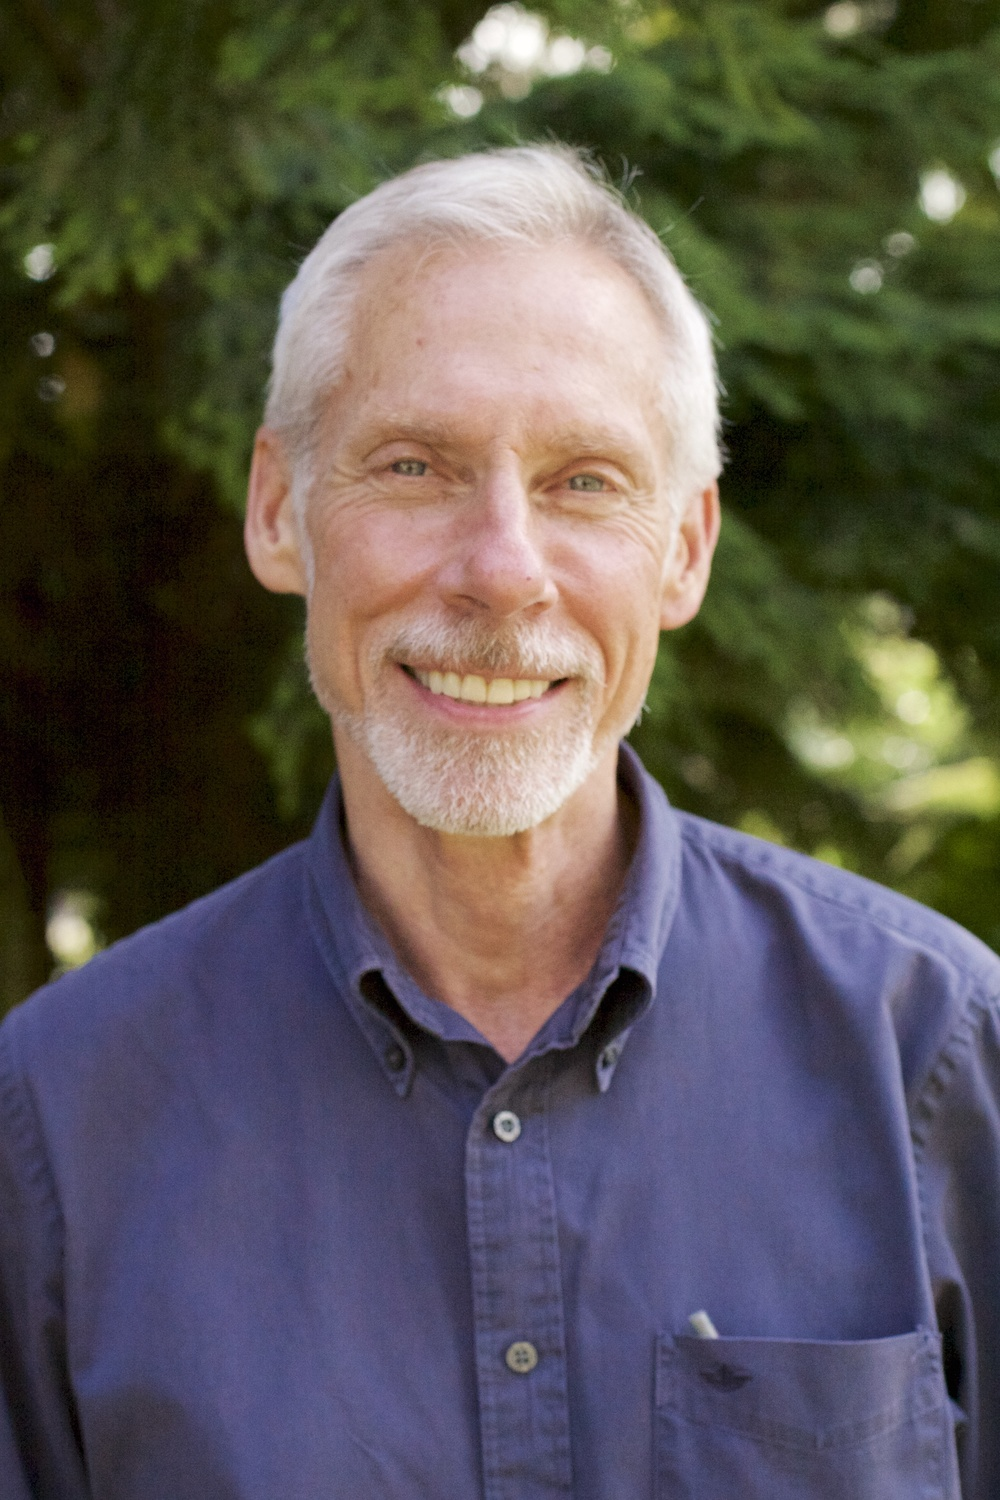 Bruce Hall, MA, LMHC, Therapist ∙ Adolescents (16+) ∙ Adults and Older Adults ∙ Grief and Loss ∙ Life Transitions ∙ Adjustment Issues ∙ LGBTQIA ∙ Internalized Oppression ∙ Depression ∙ Anxiety and Panic ∙ Trauma